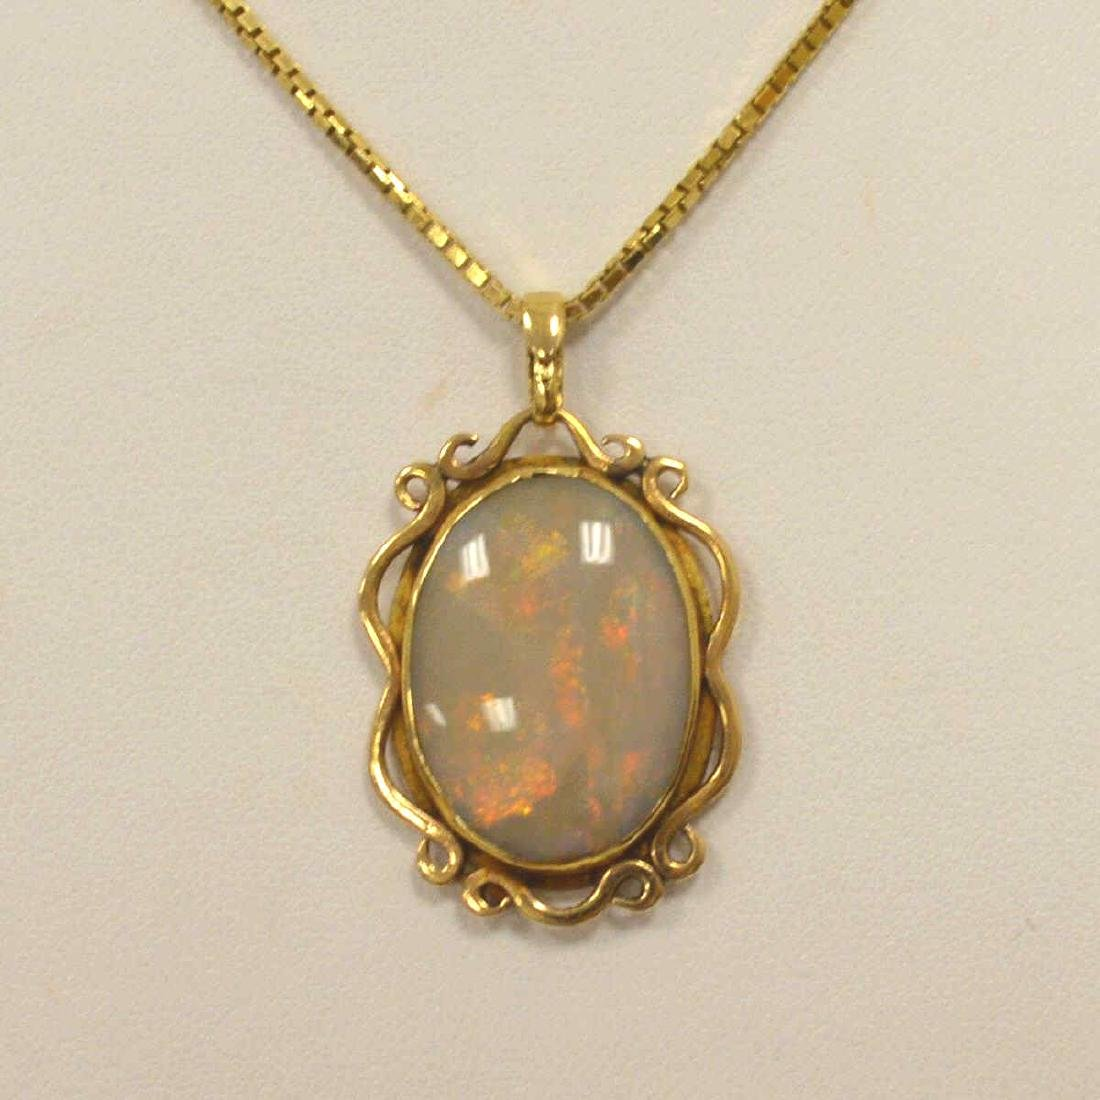 14kt yellow gold opal necklace - 2